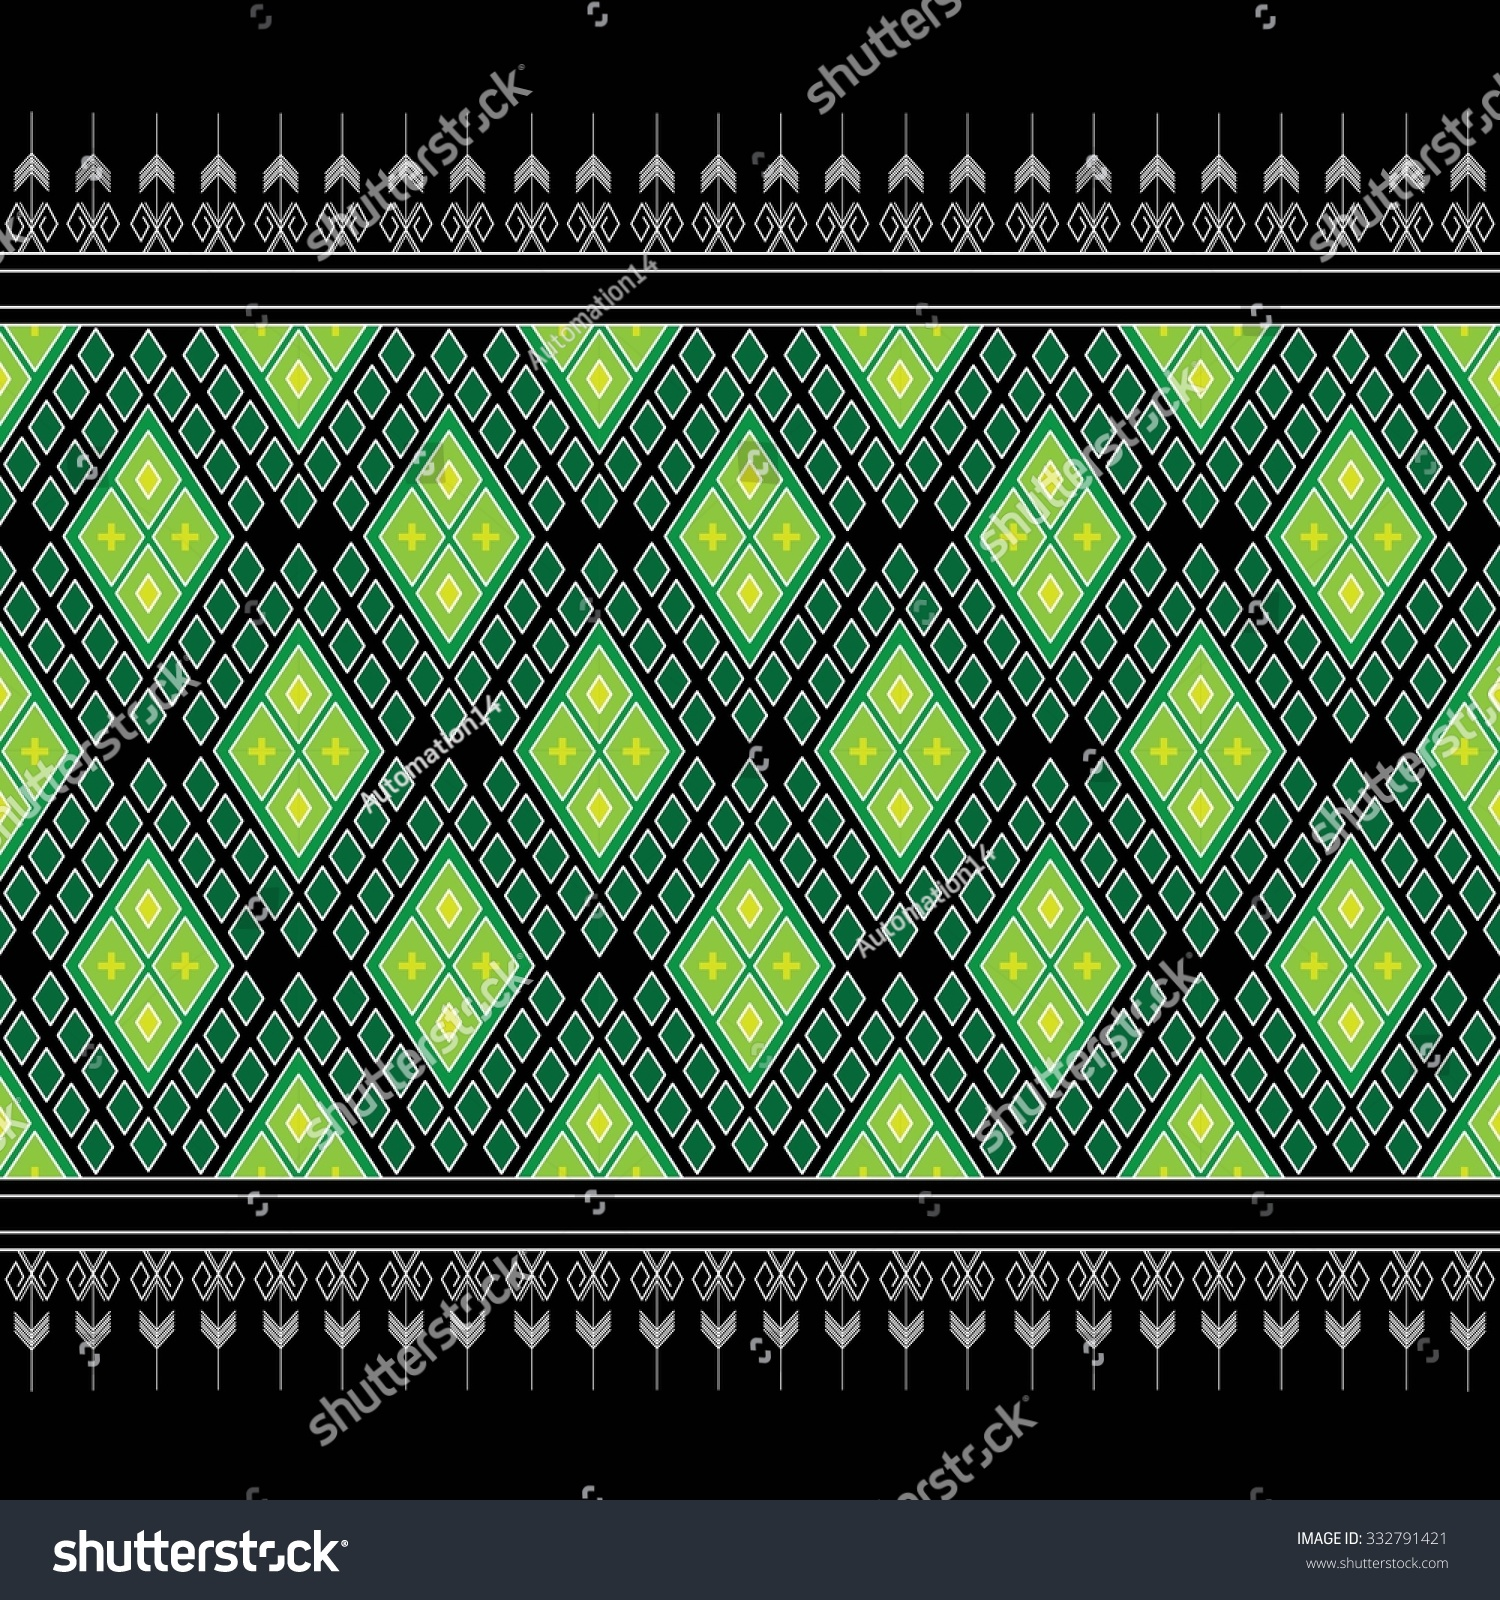 Geometric Ethnic pattern design for background carpet wallpaper clothing sarong wrapping